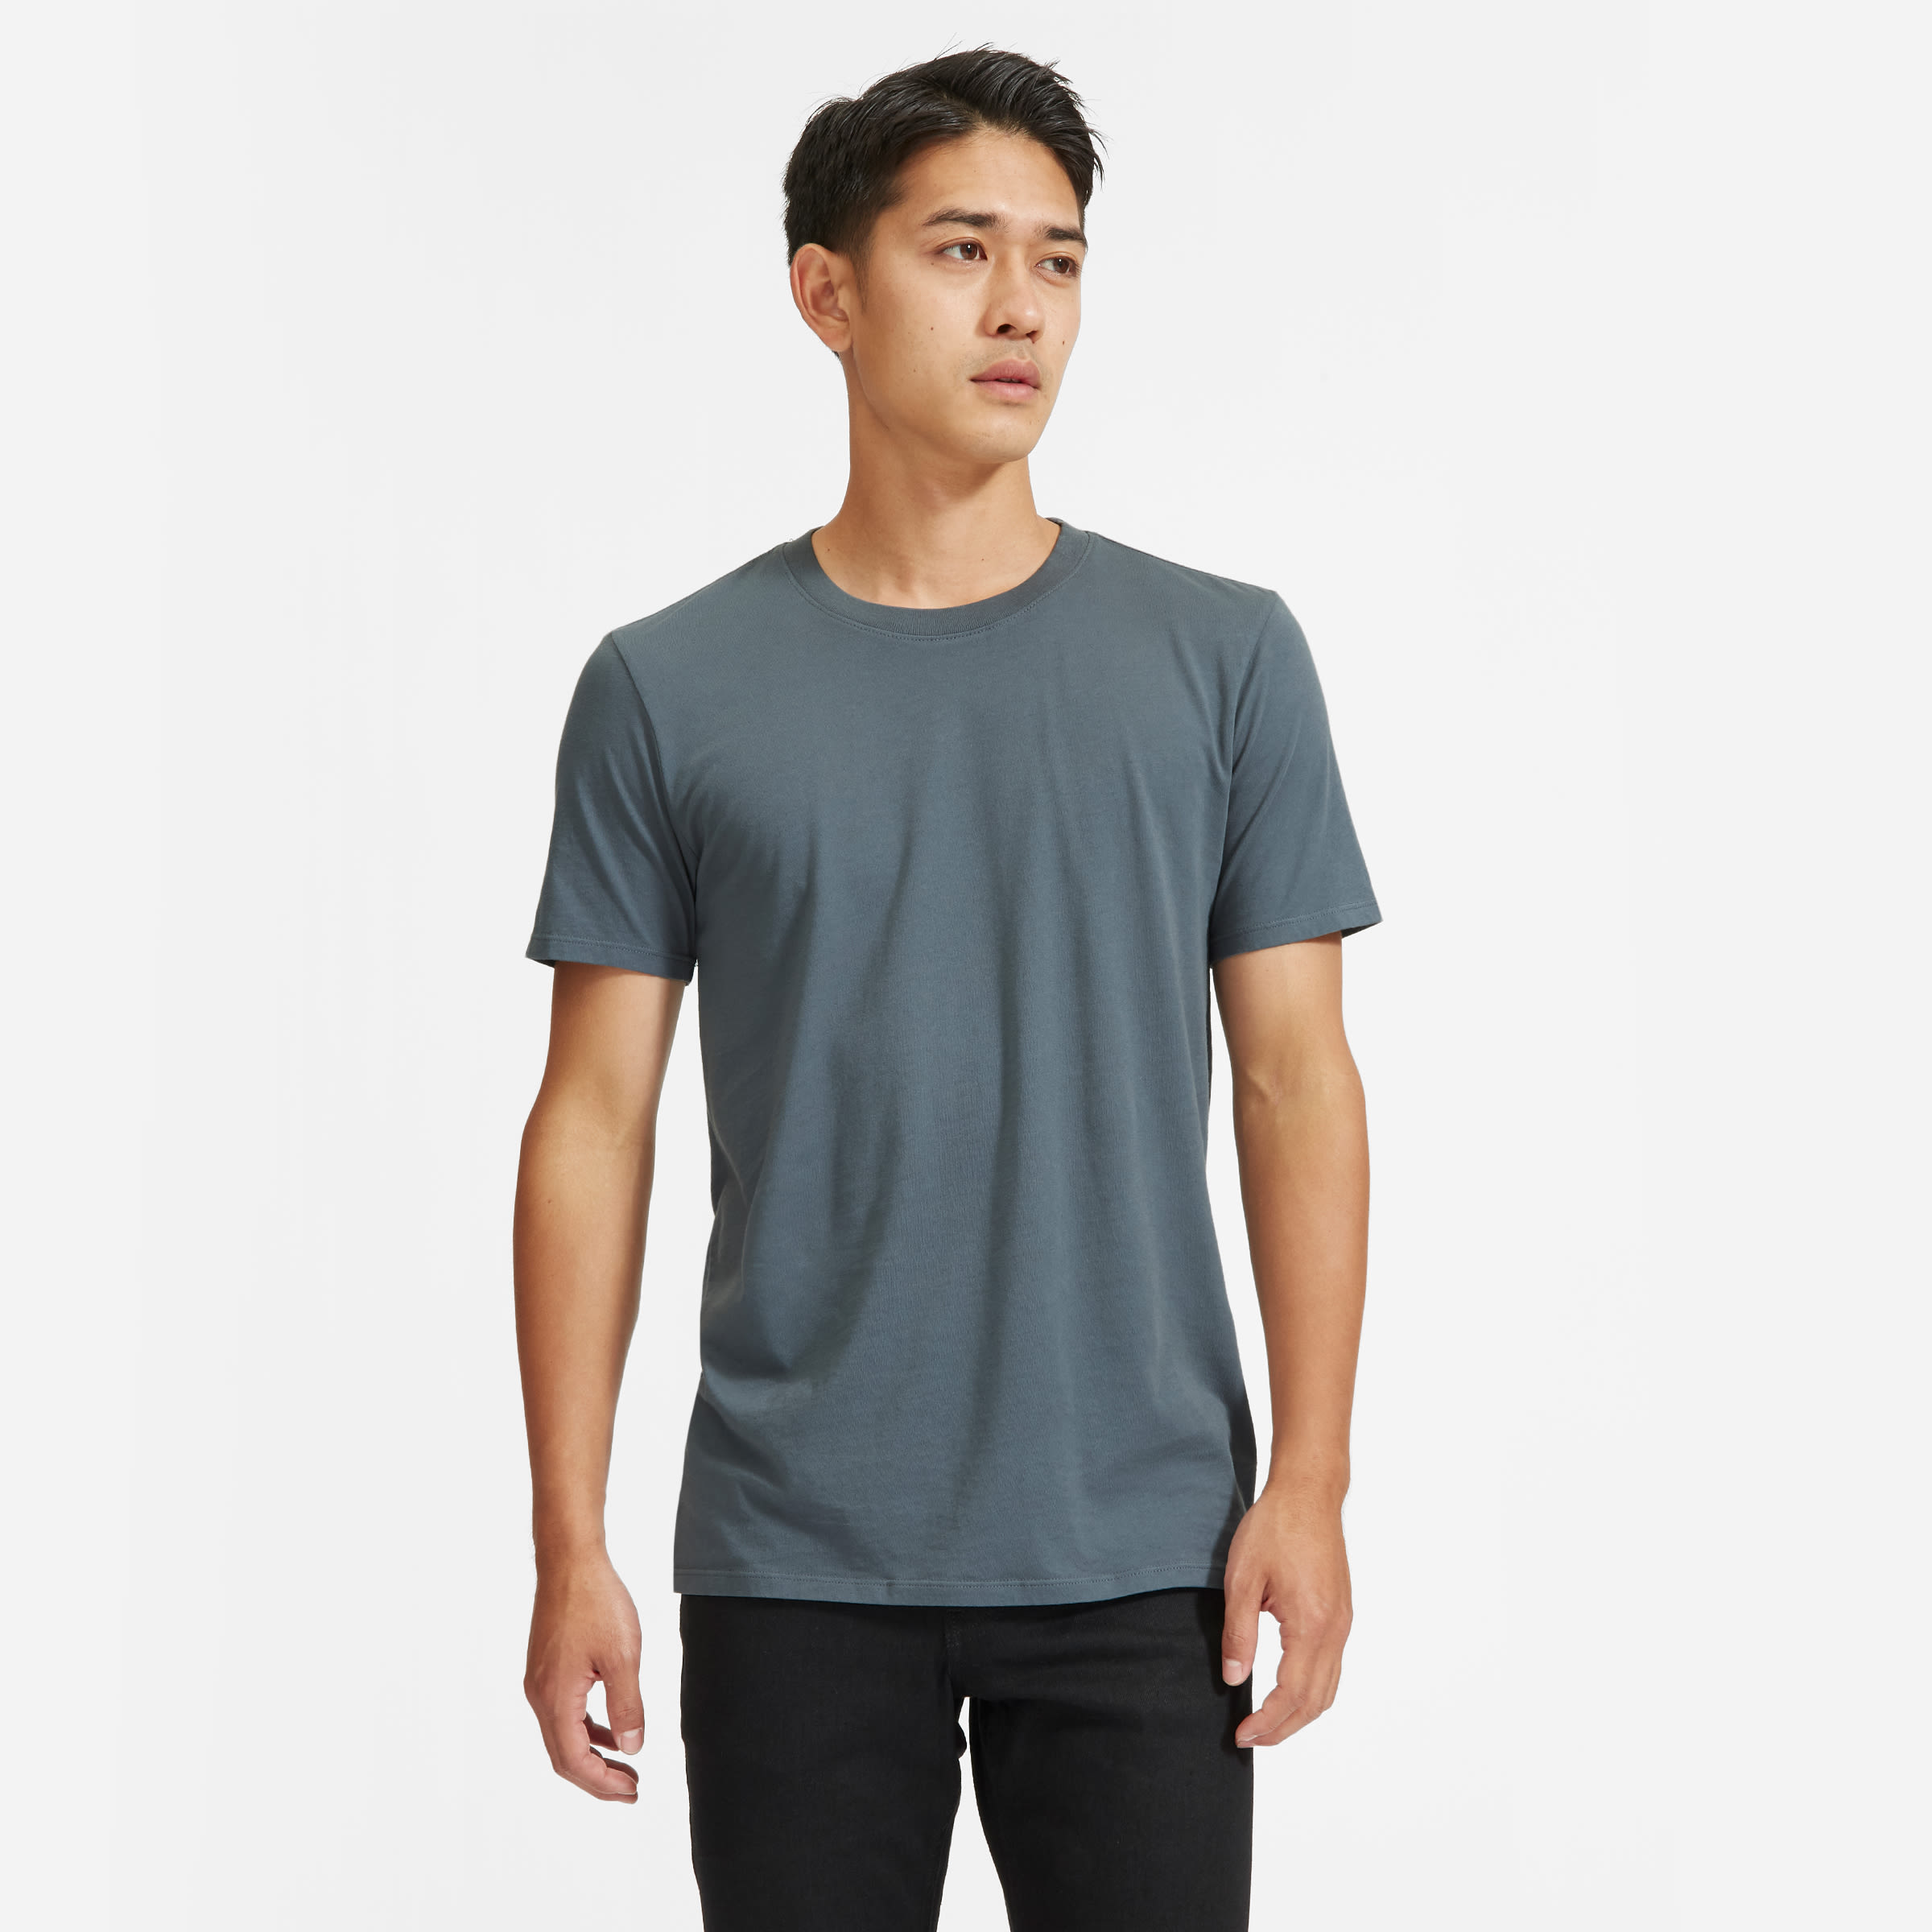 cheap for discount cbbe3 3b2a4 Men's T-Shirts - Long & Short Sleeve T-Shirts | Everlane